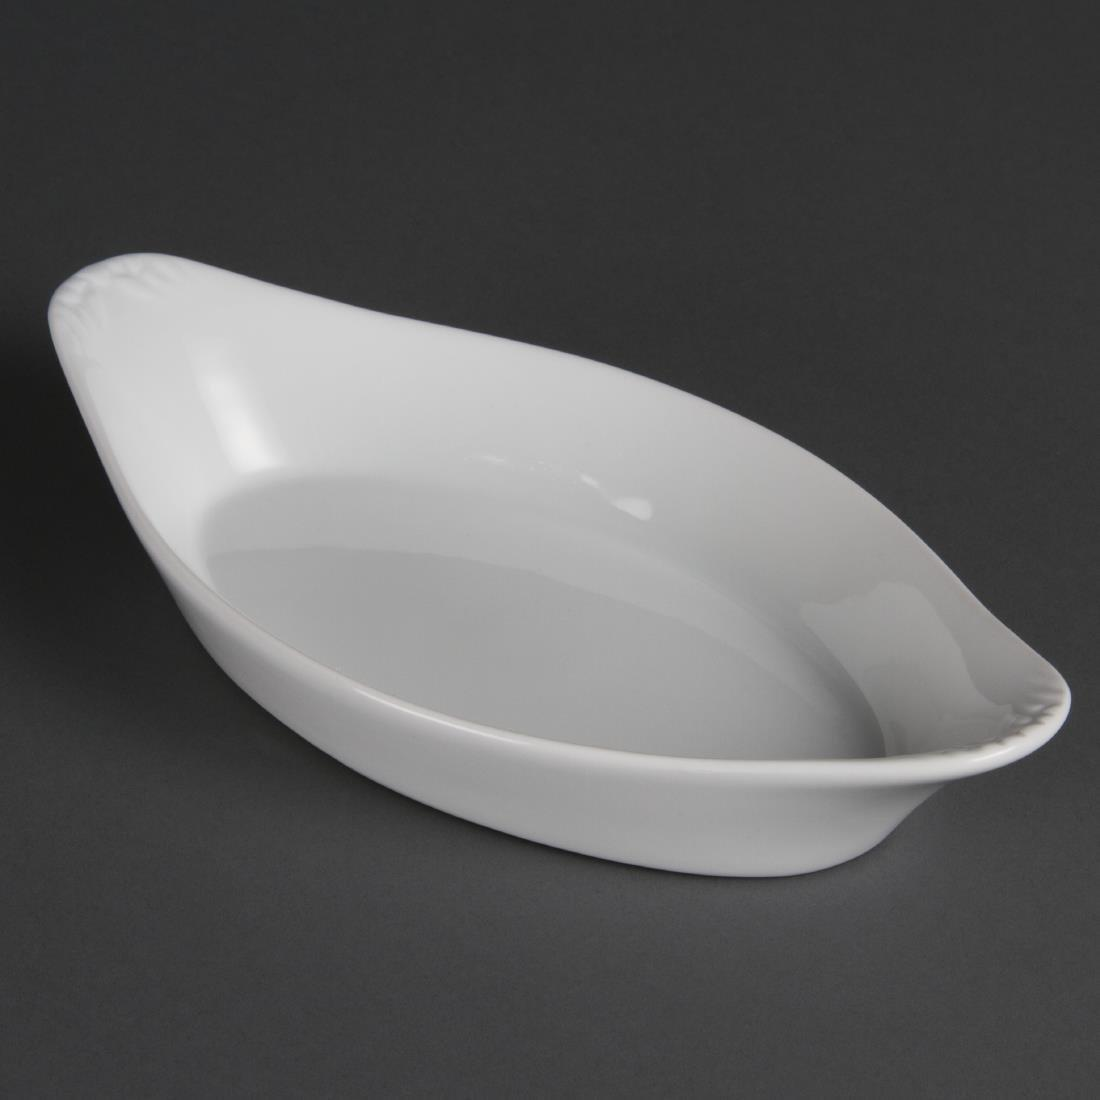 W440 - Olympia Whiteware Oval Eared Dish